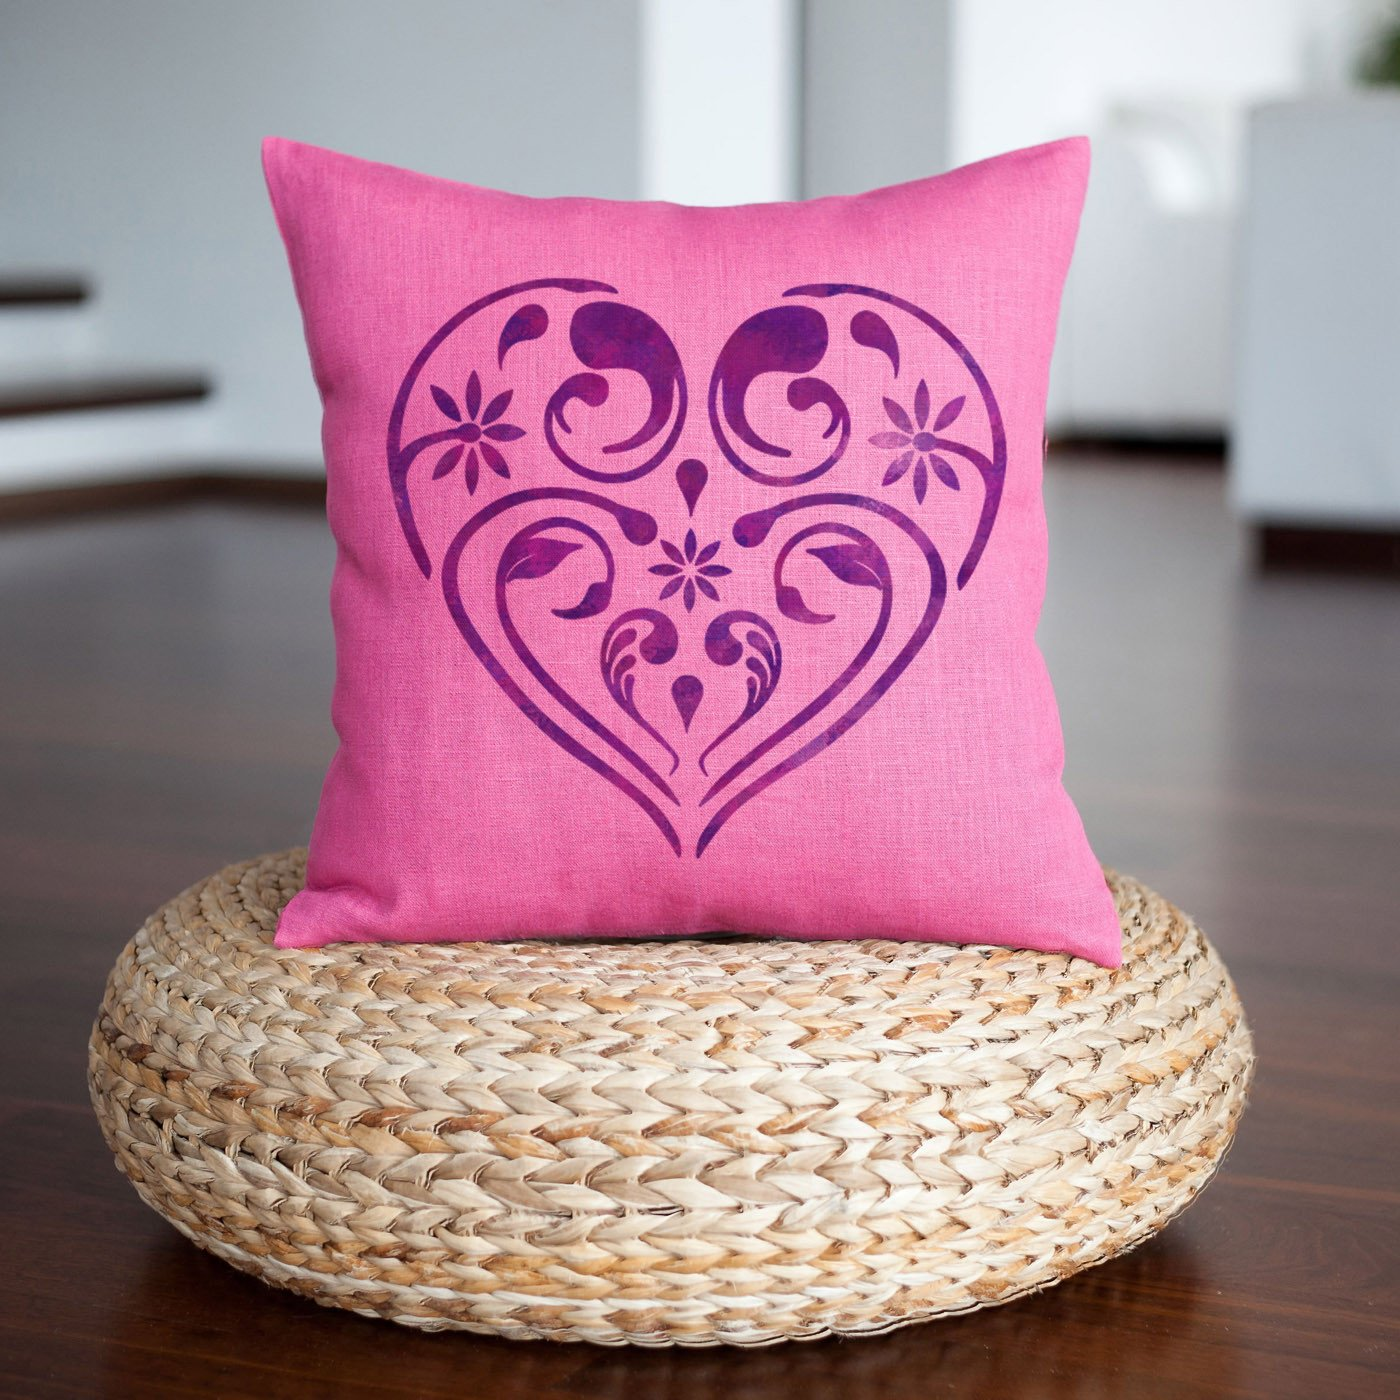 CraftStar Flourish & Flower Heart Stencil on a cushion